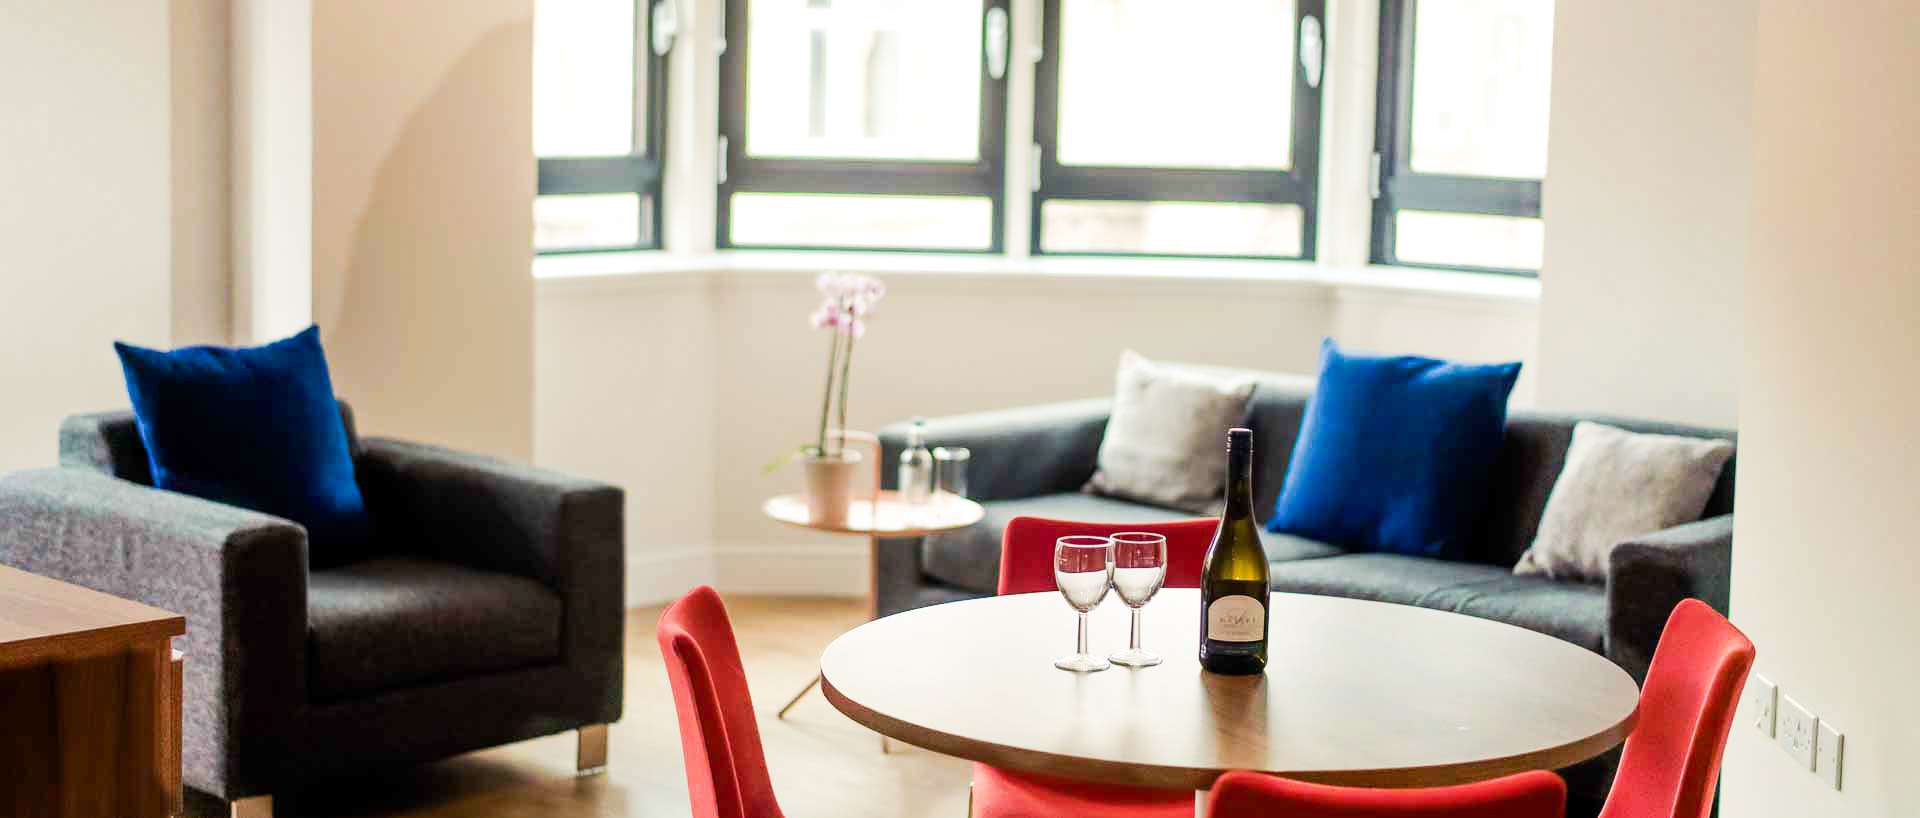 Corporate-Accommodation-Glasgow---Short-Let-Serviced-Apartments-in-central-Glasgow-Scotland---Urban-Stay-2